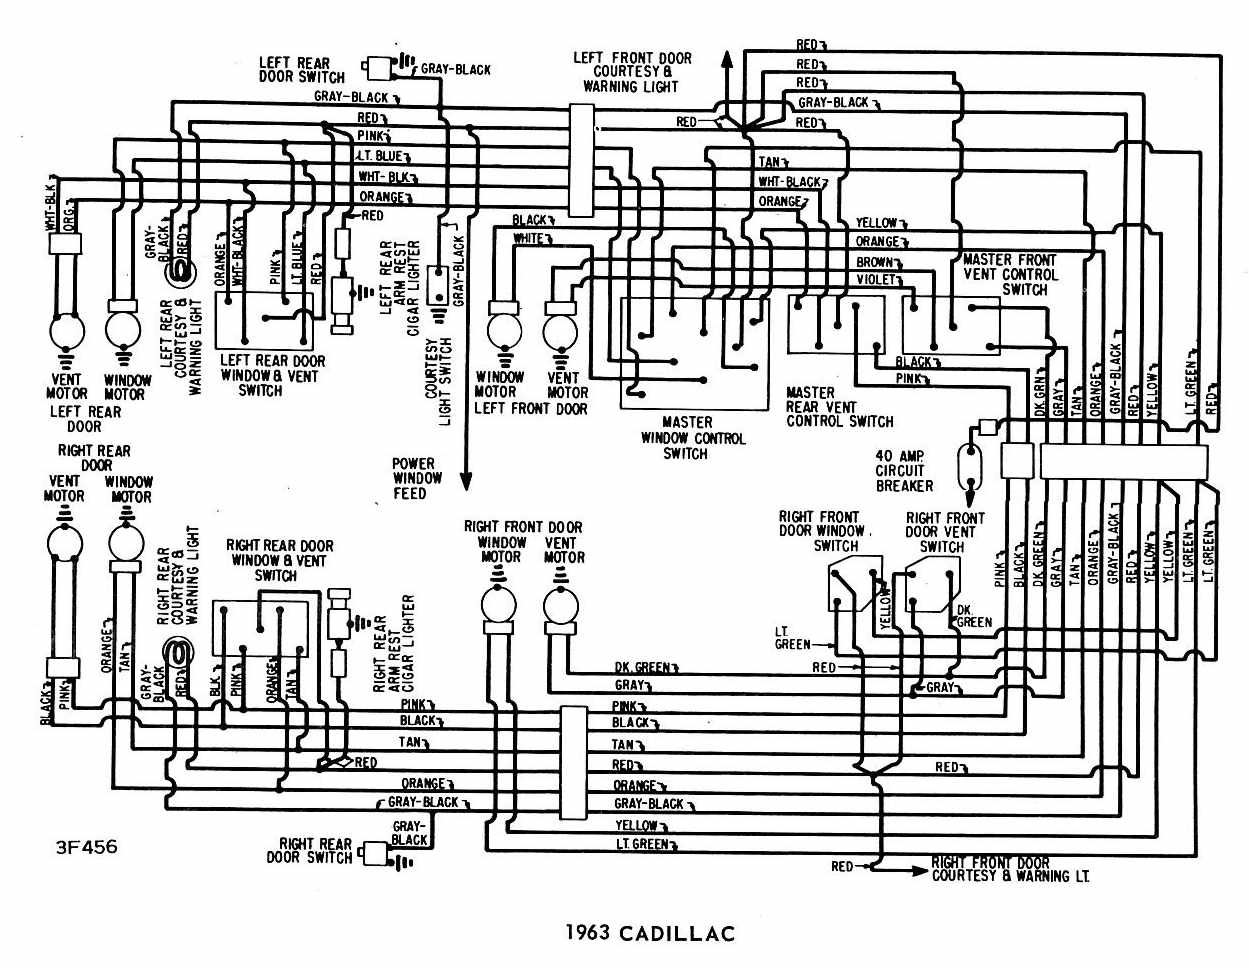 Cadillac+1963+Windows+Wiring+Diagram cadillac 1963 windows wiring diagram all about wiring diagrams 63 falcon wiring diagram at reclaimingppi.co